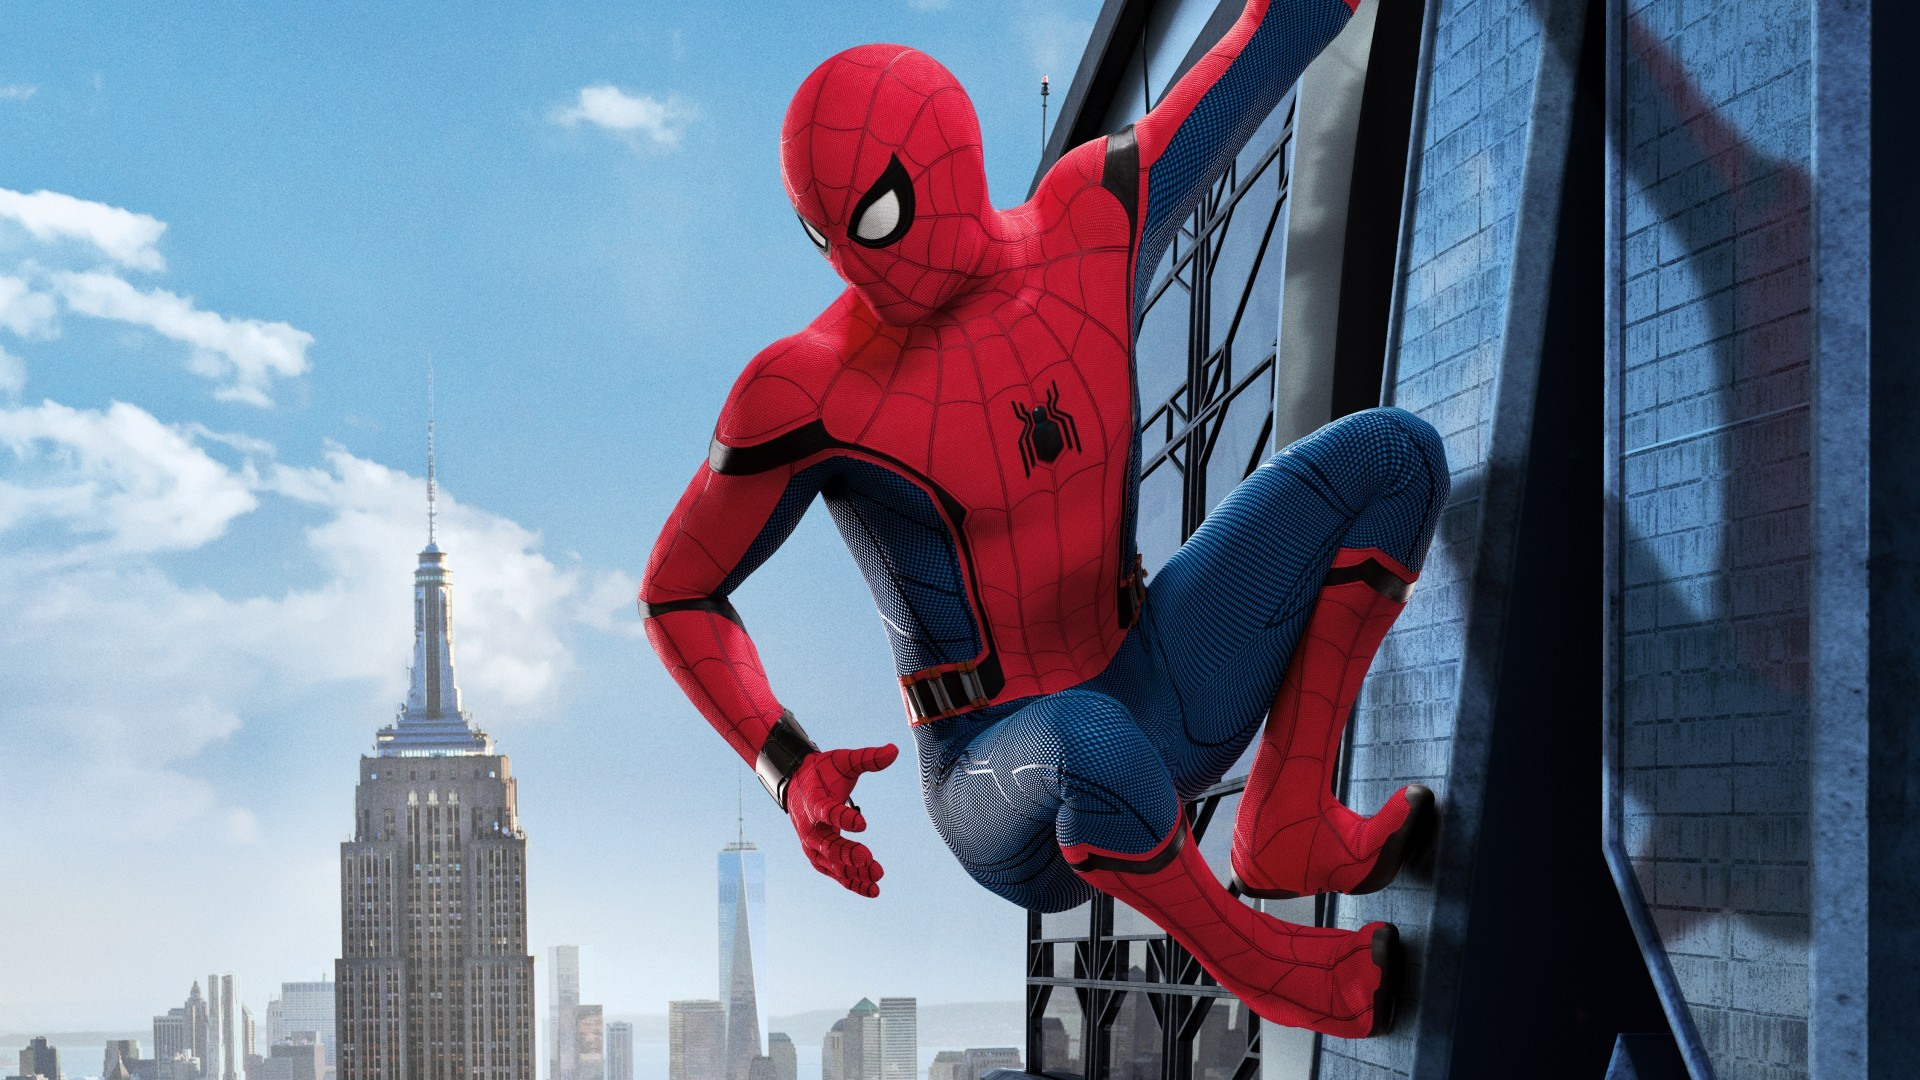 Spiderman HD Wallpapers 73 Images